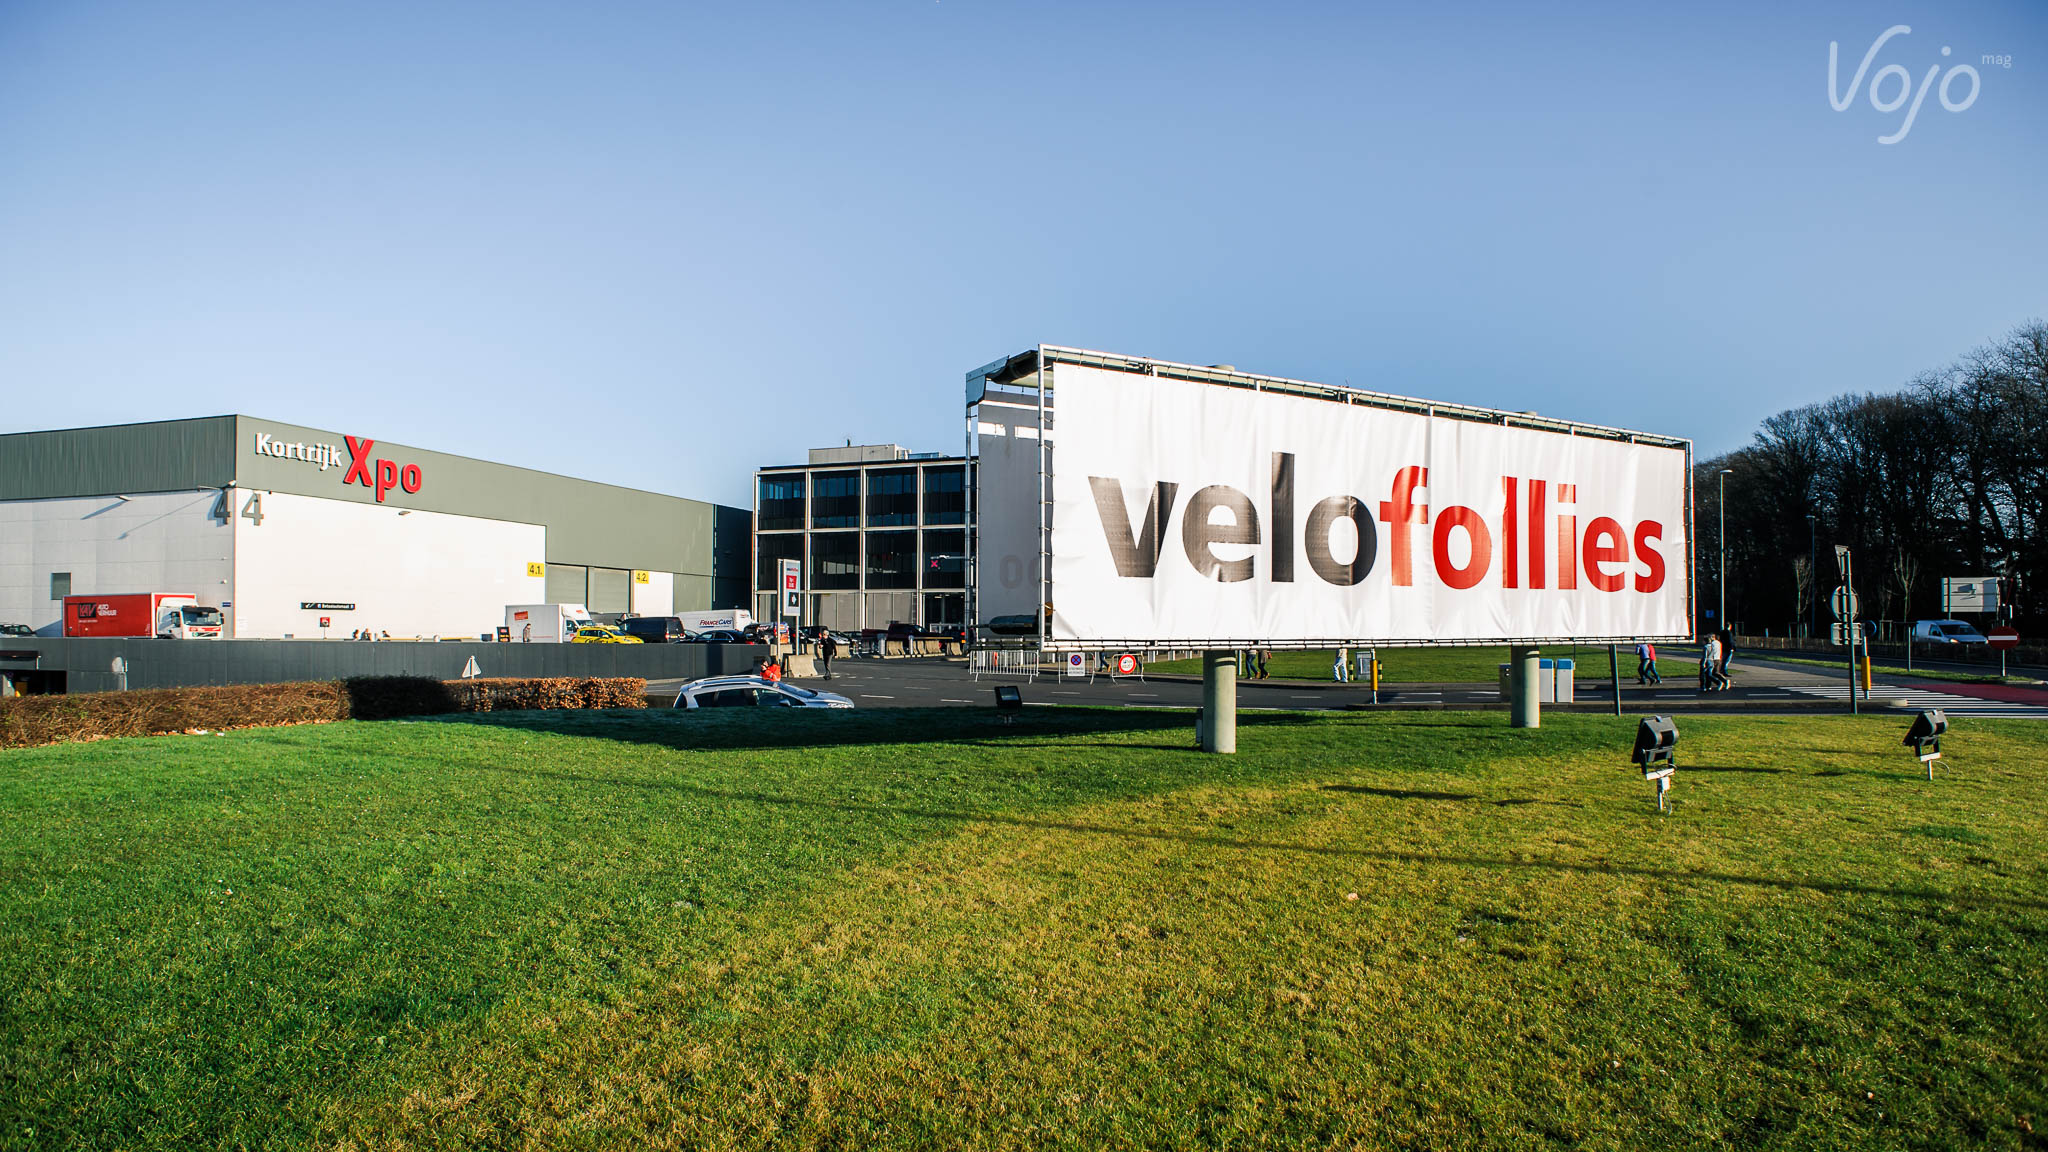 Velofollies2015_Ambiance_Copyright_OBeart_VojoMag-8